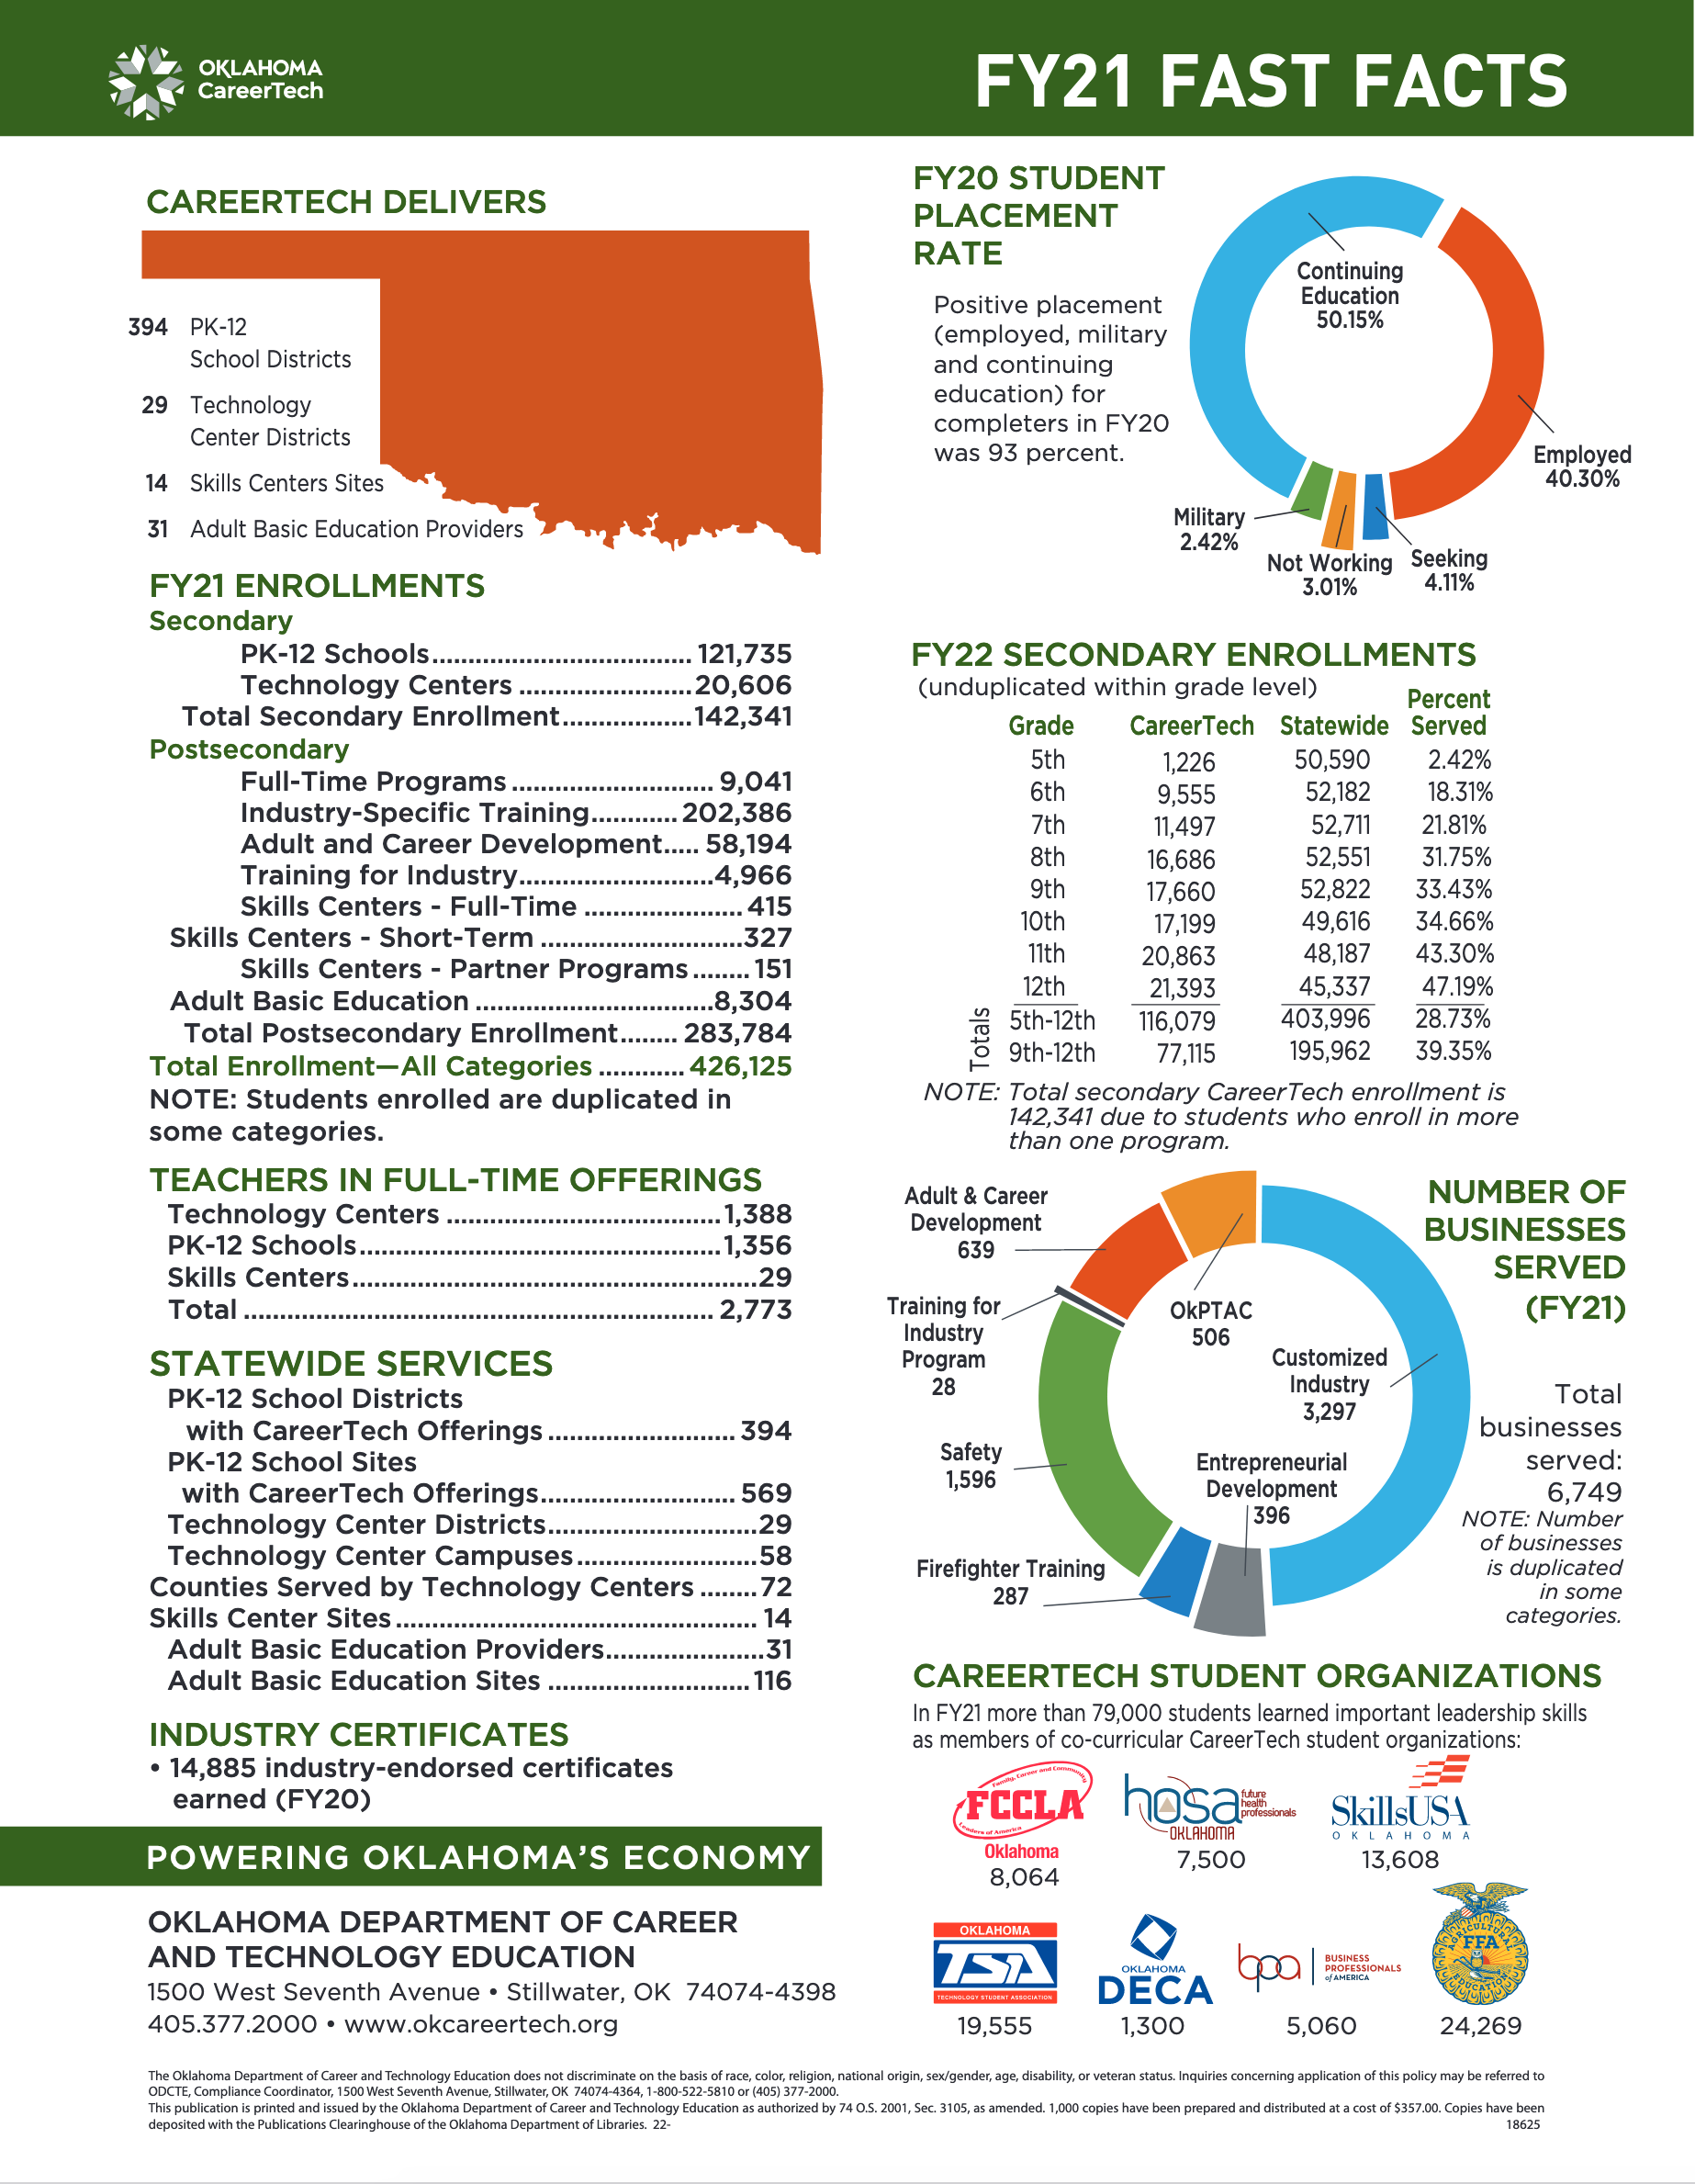 Image of the Oklahoma CareerTech Fast Facts FY20 flyer